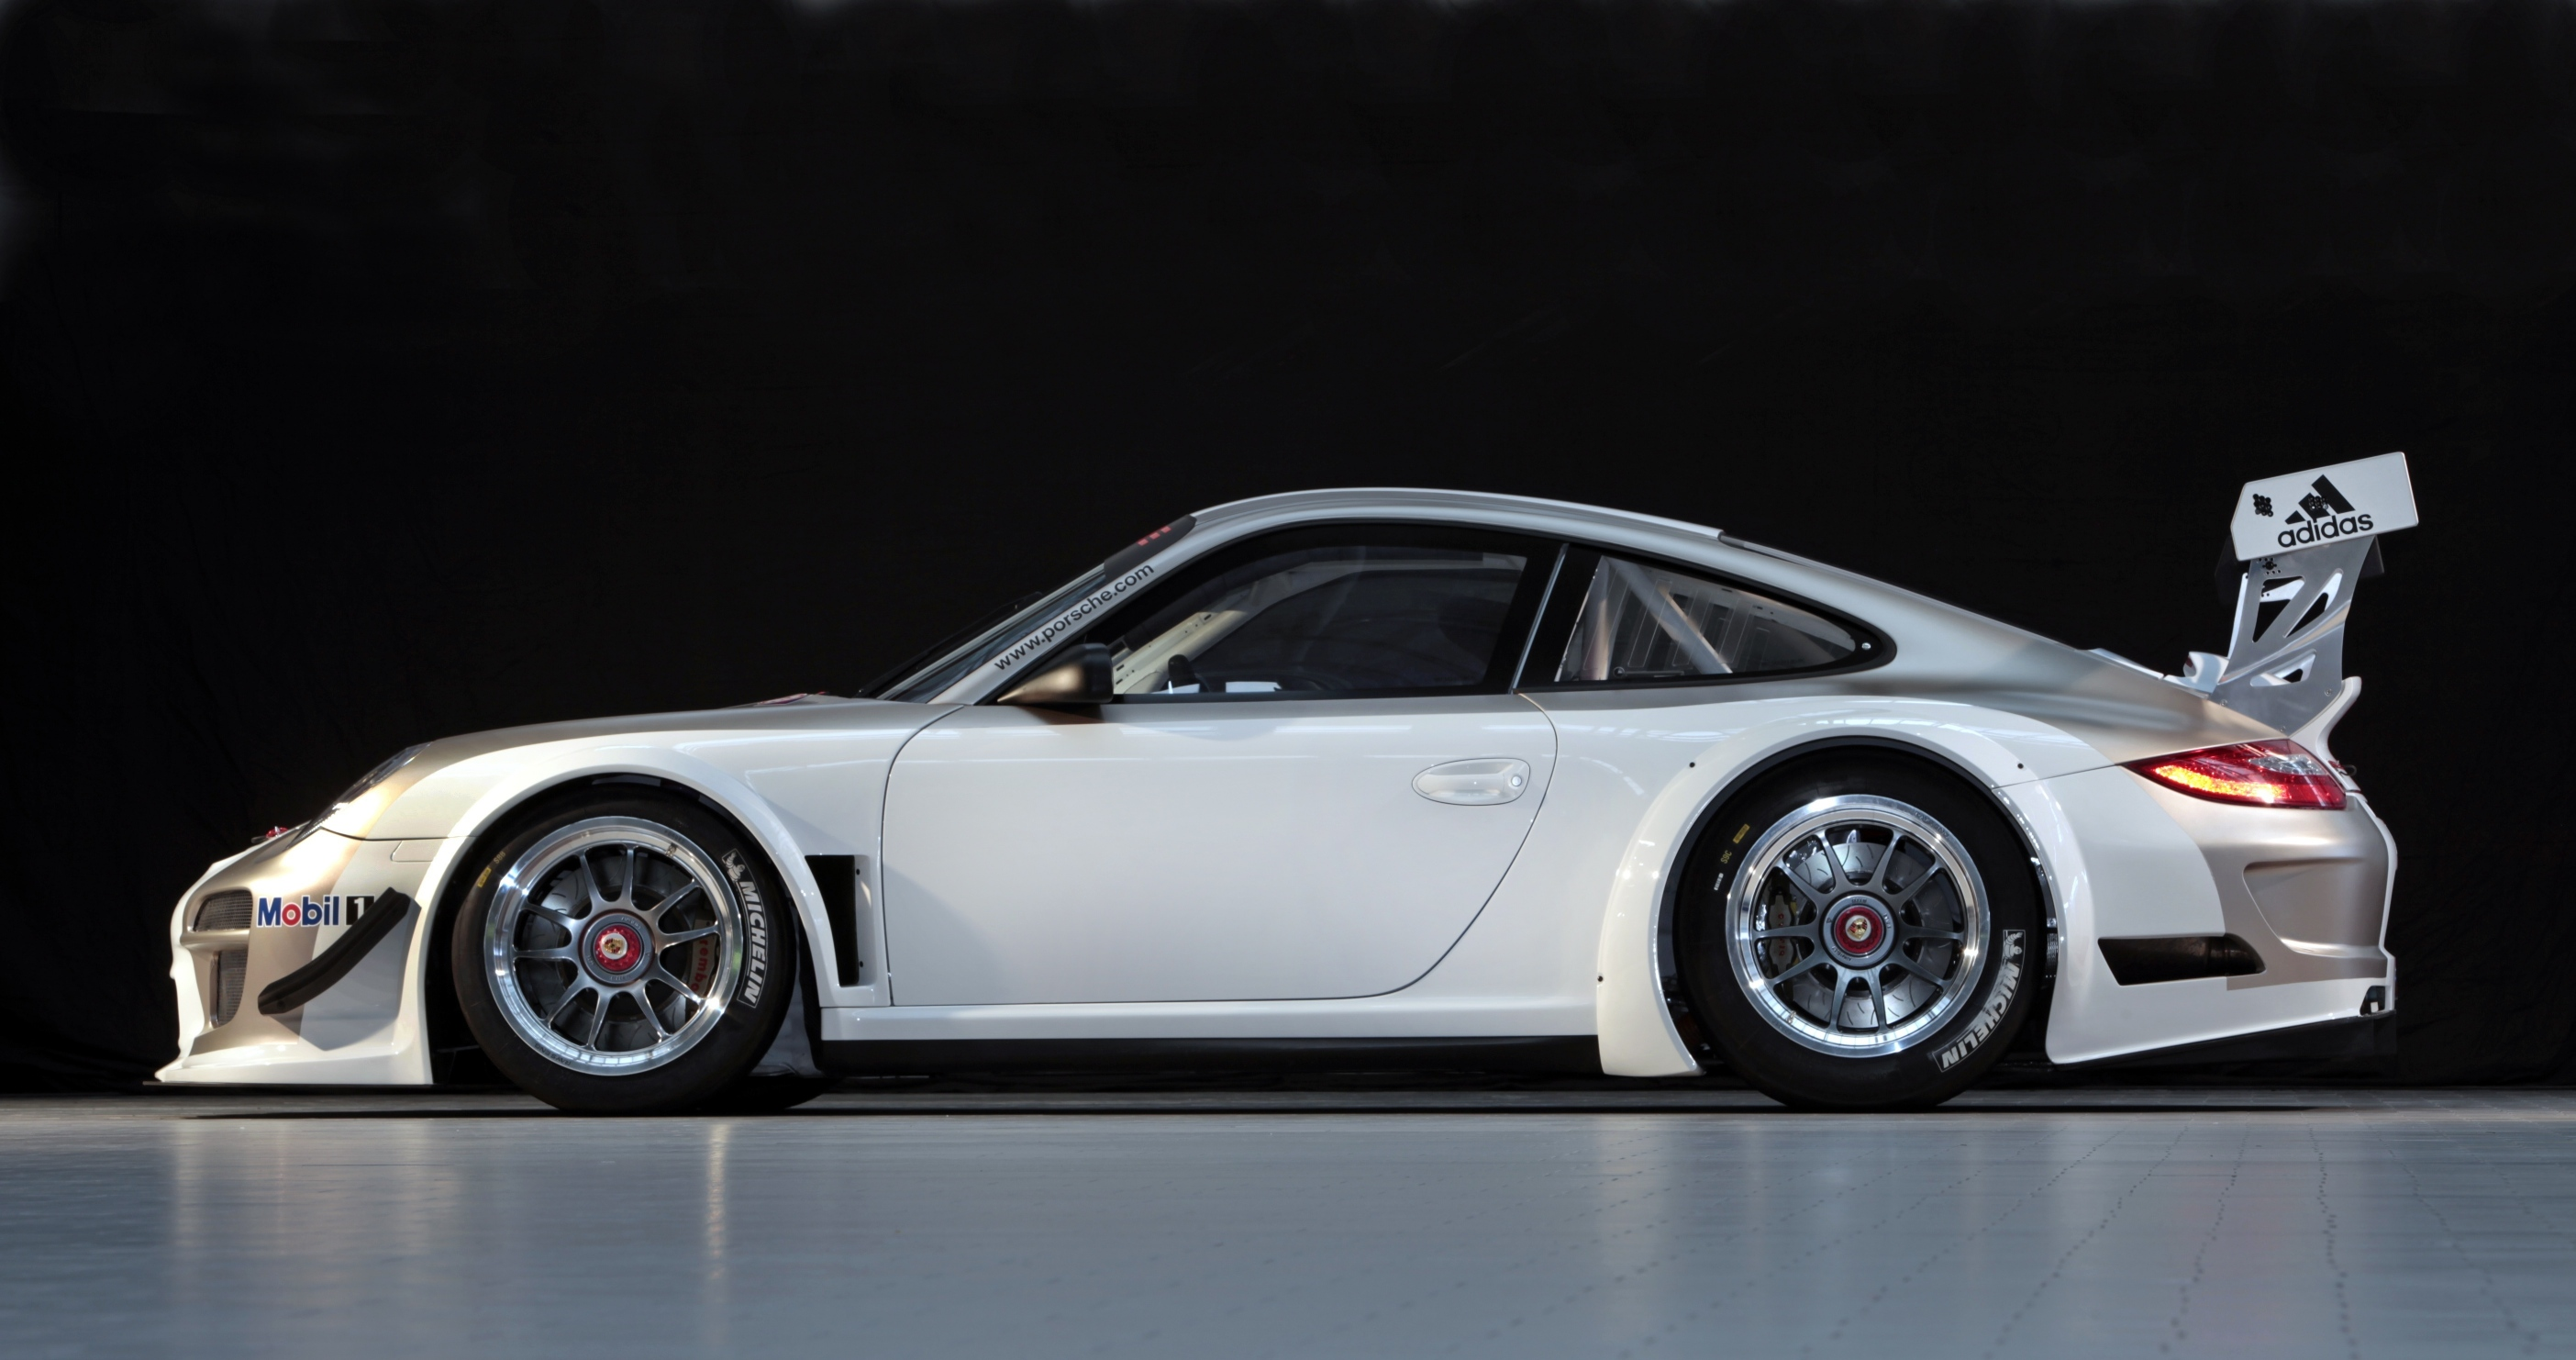 porsche 911 gt3 r race car launched photos 1 of 4. Black Bedroom Furniture Sets. Home Design Ideas